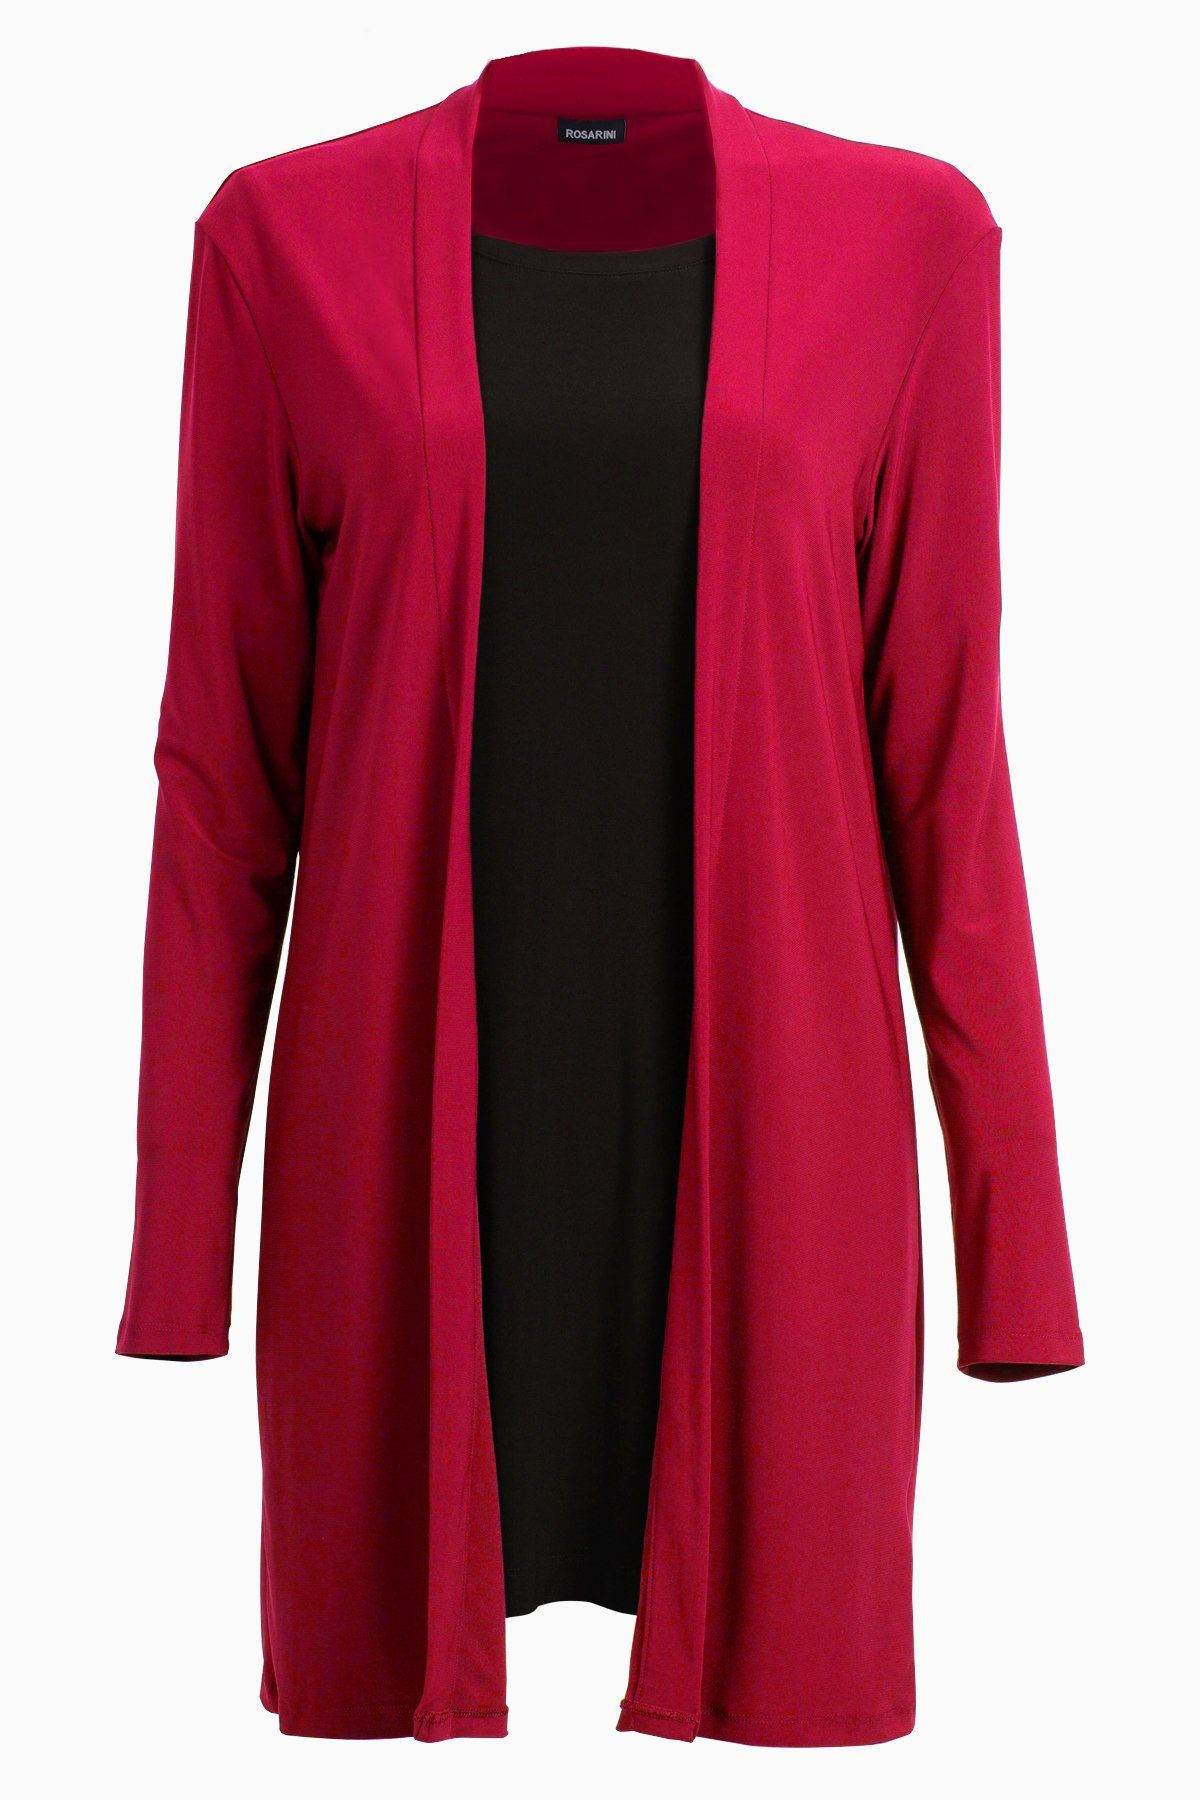 Mid Length Cardigan - Women's Clothing -ROSARINI